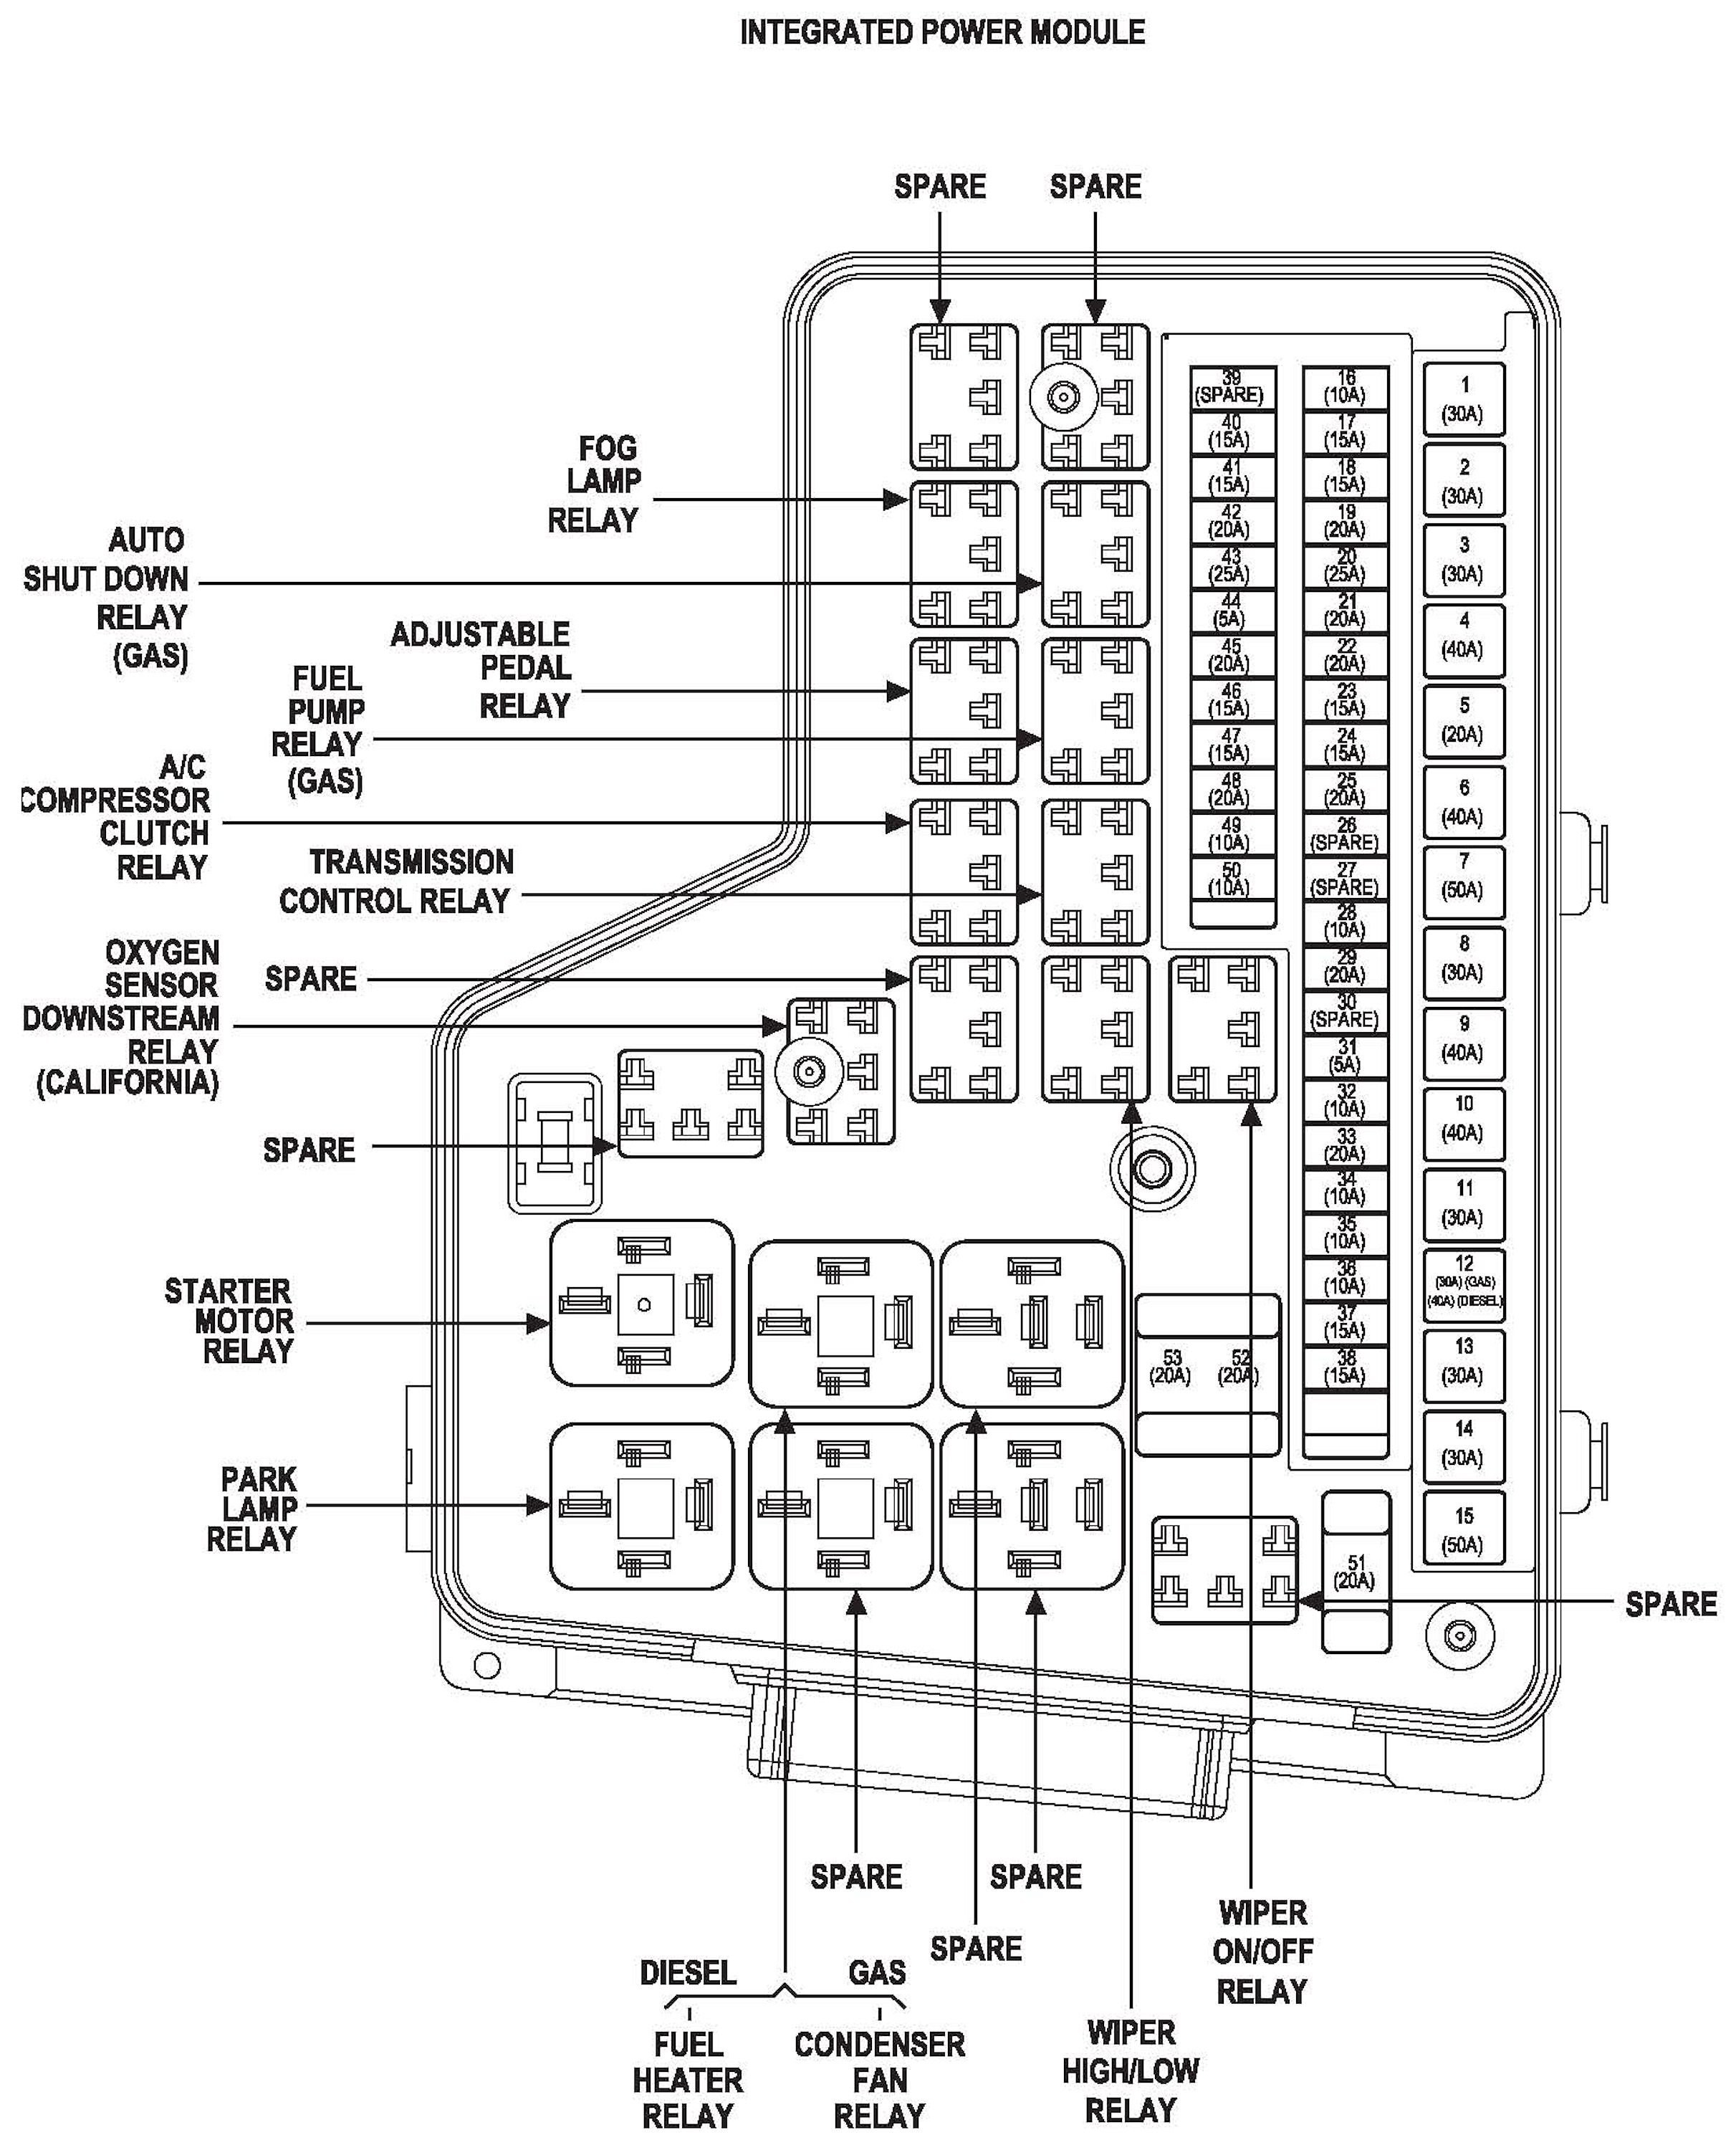 2004 dodge ram 2500 fuse diagram - wiring diagram known-data-c -  known-data-c.disnar.it  disnar.it